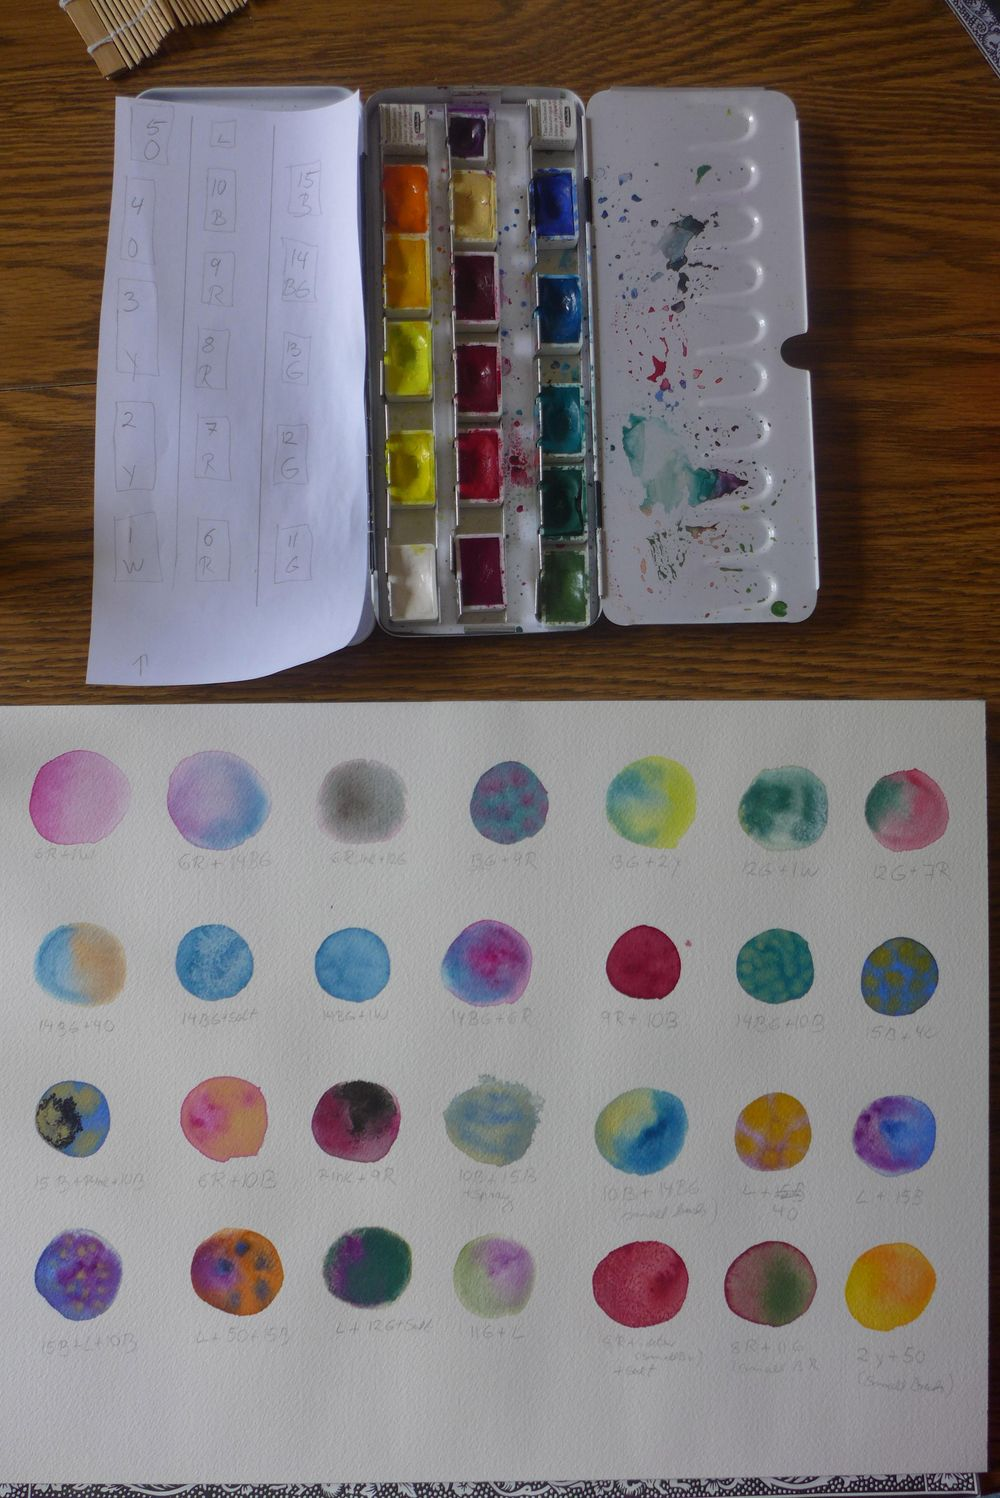 Modern Watercolor Techniques 1 Exercises  - image 2 - student project